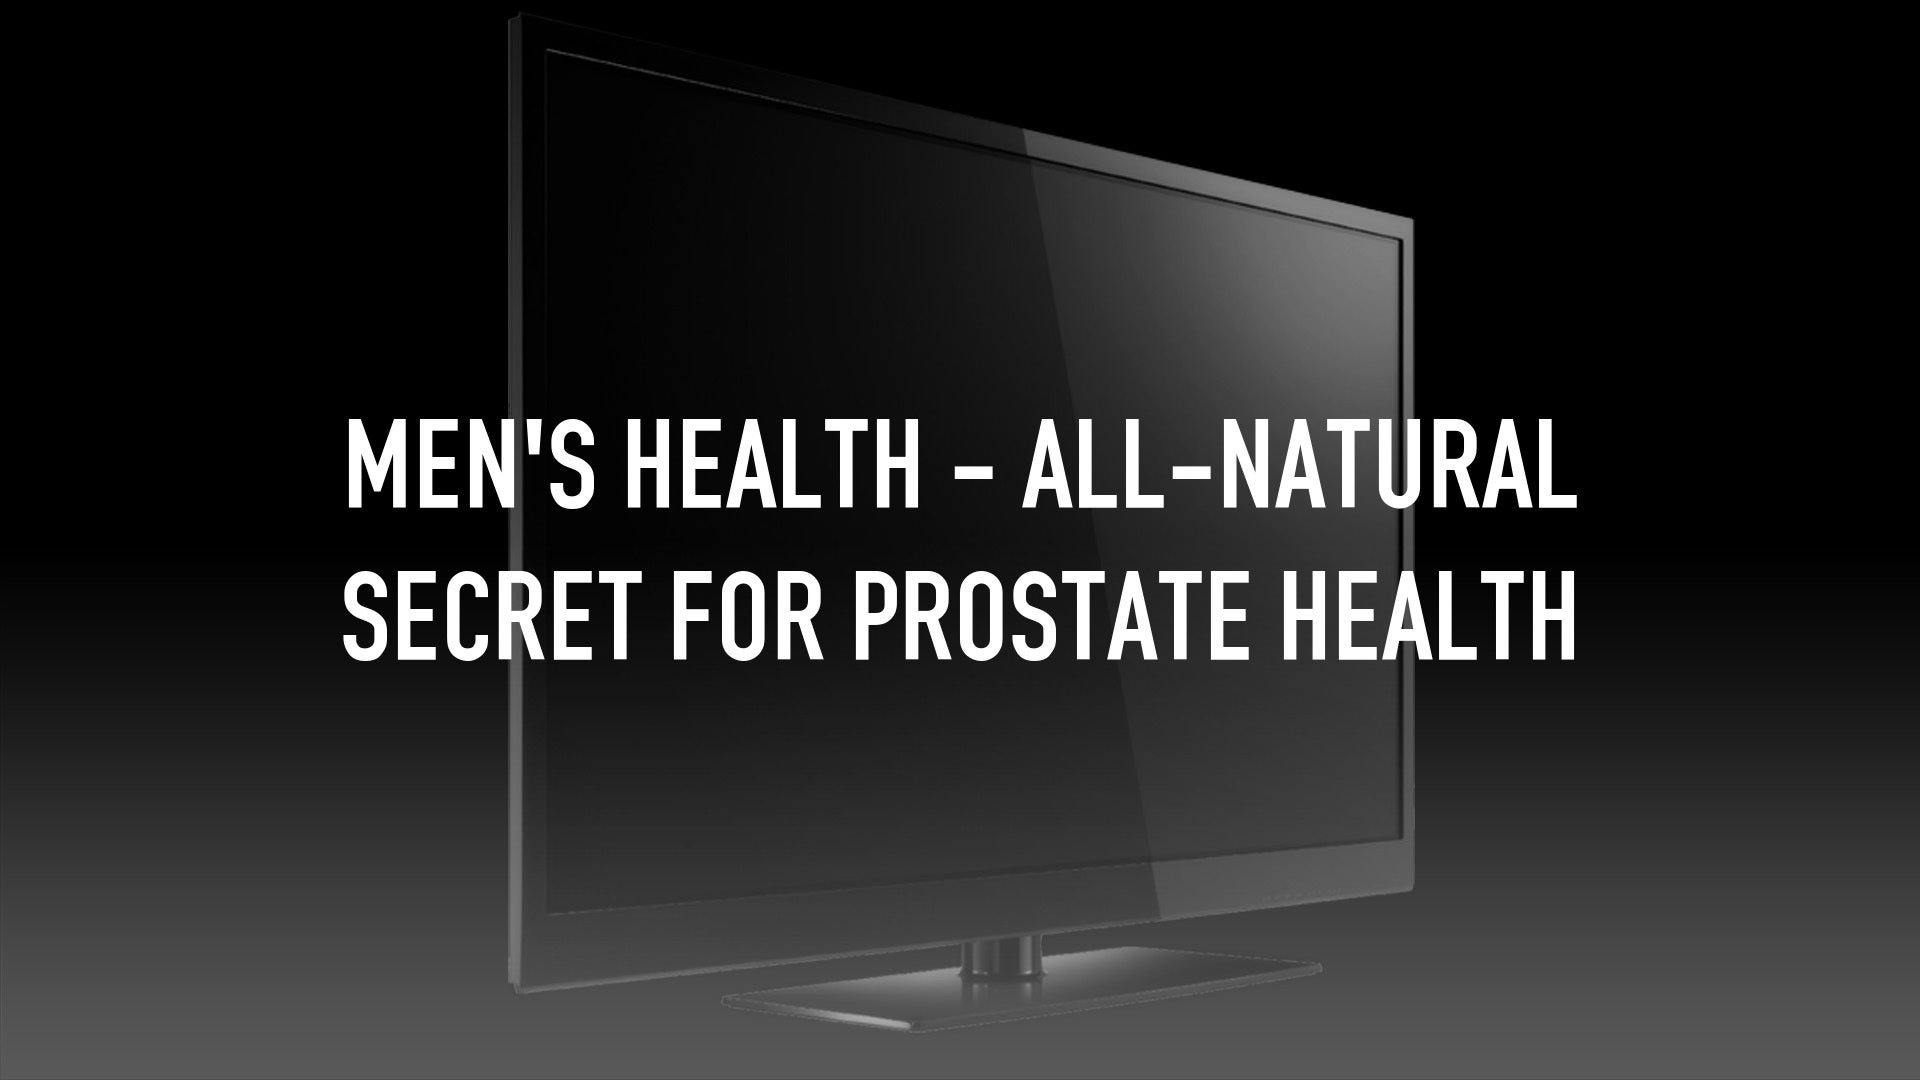 Men's Health - All-Natural Secret for Prostate Health